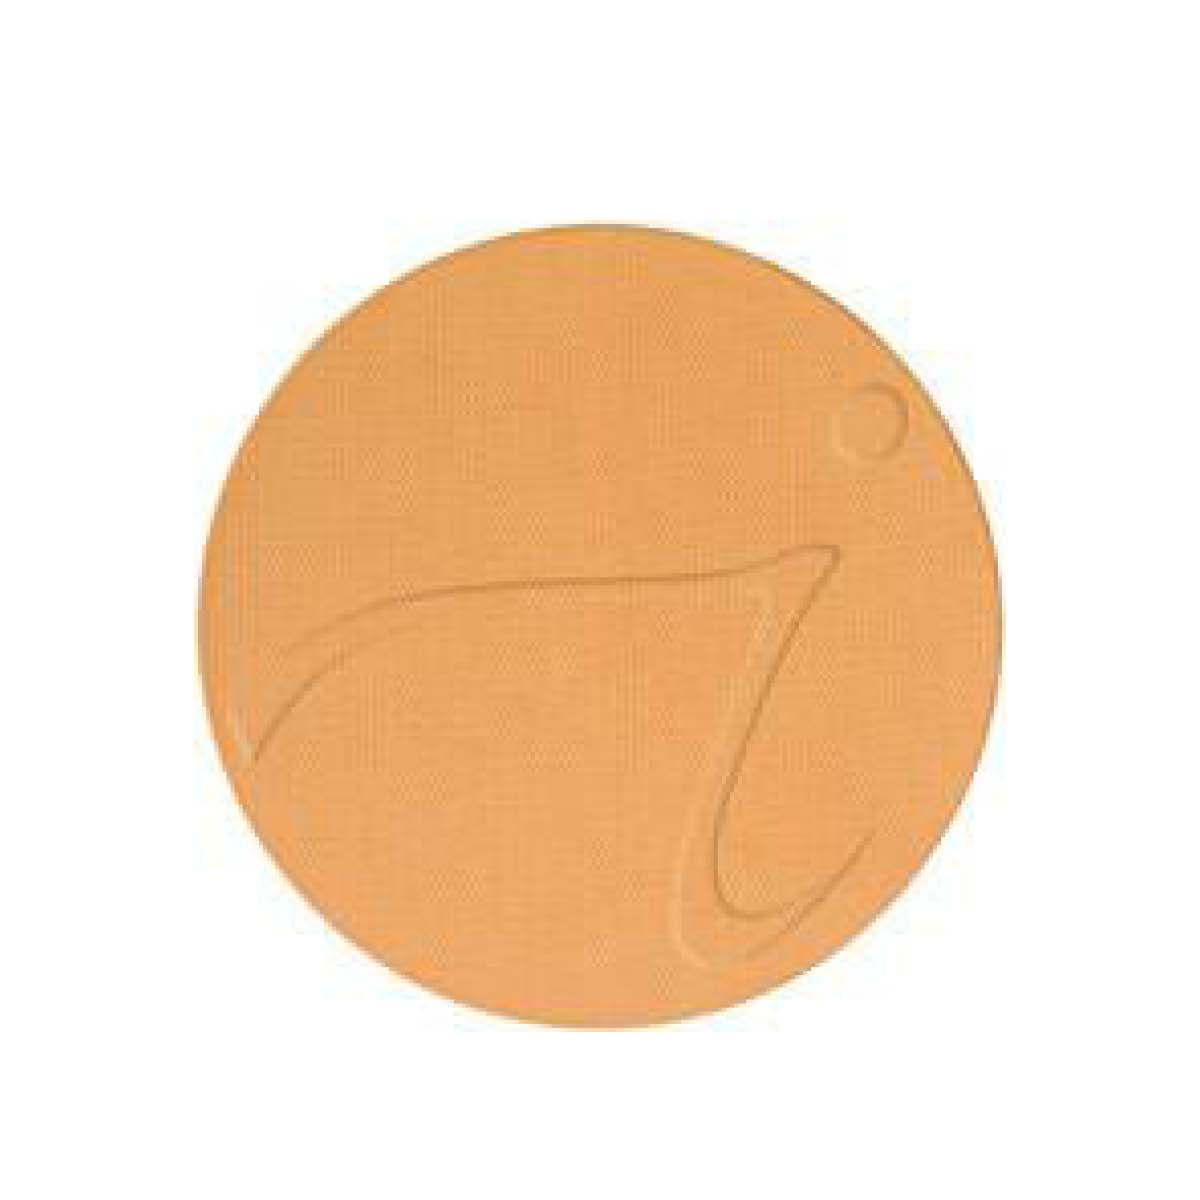 Jane Iredale Pure Pressed Powder Refill Autumn